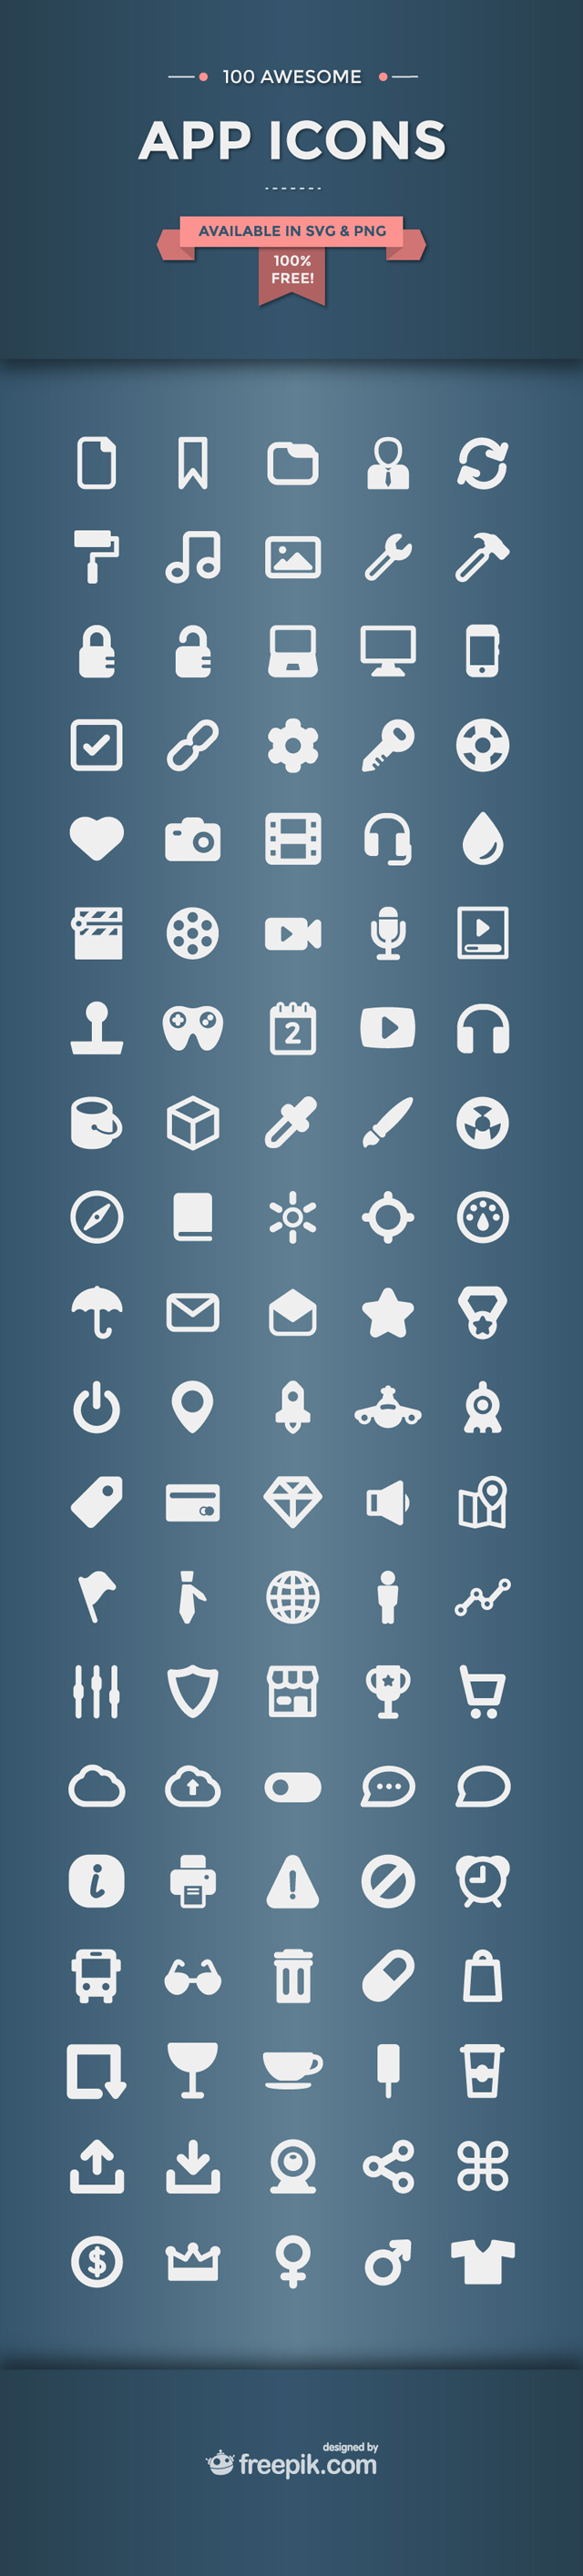 0504-01-100-awesome-app-icons-preview